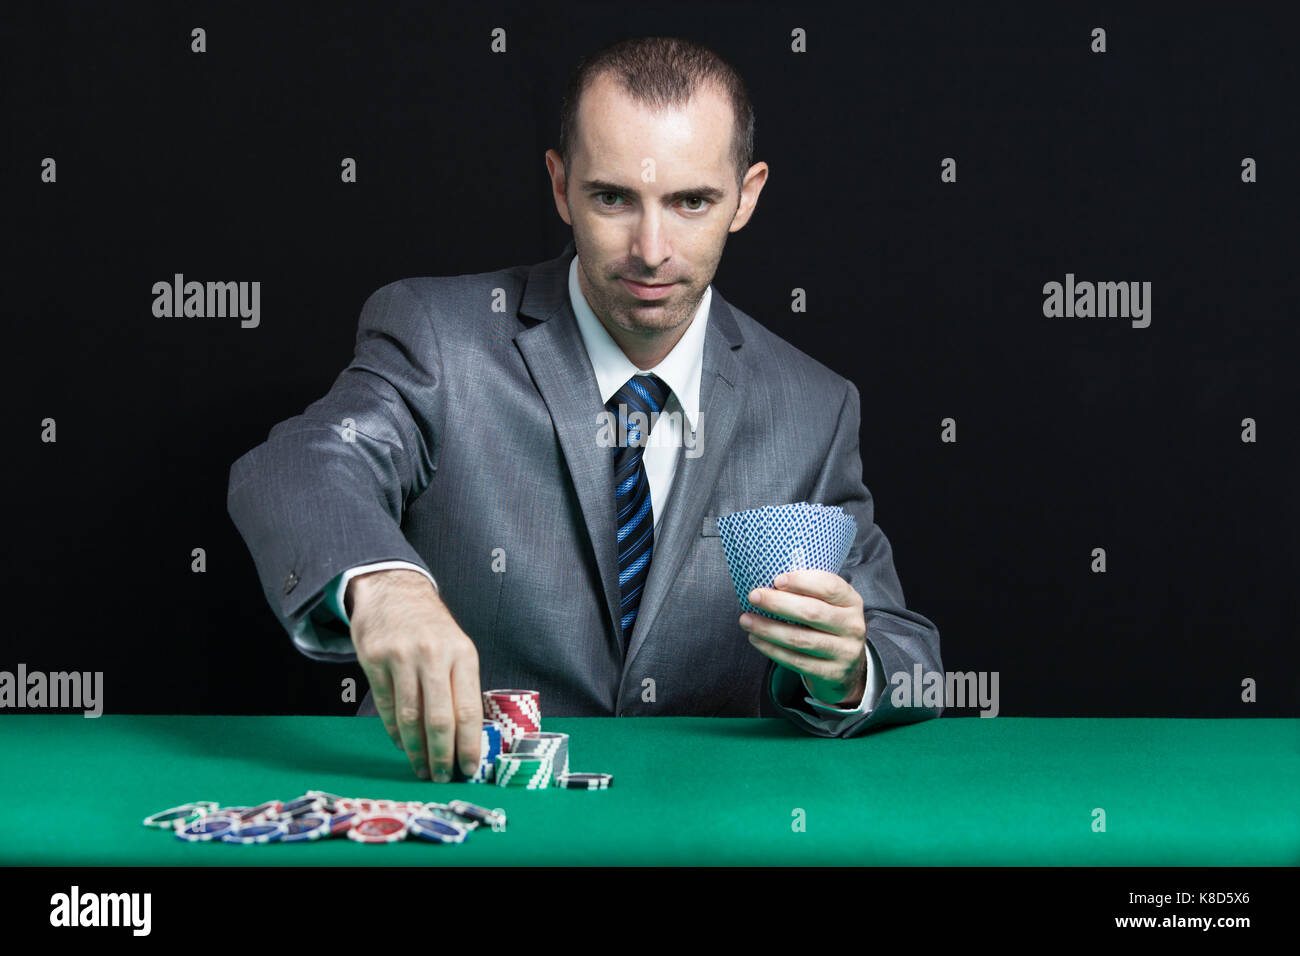 Blackjack Or Poker Game, Casino Worker Shuffling Cards - Stock Image